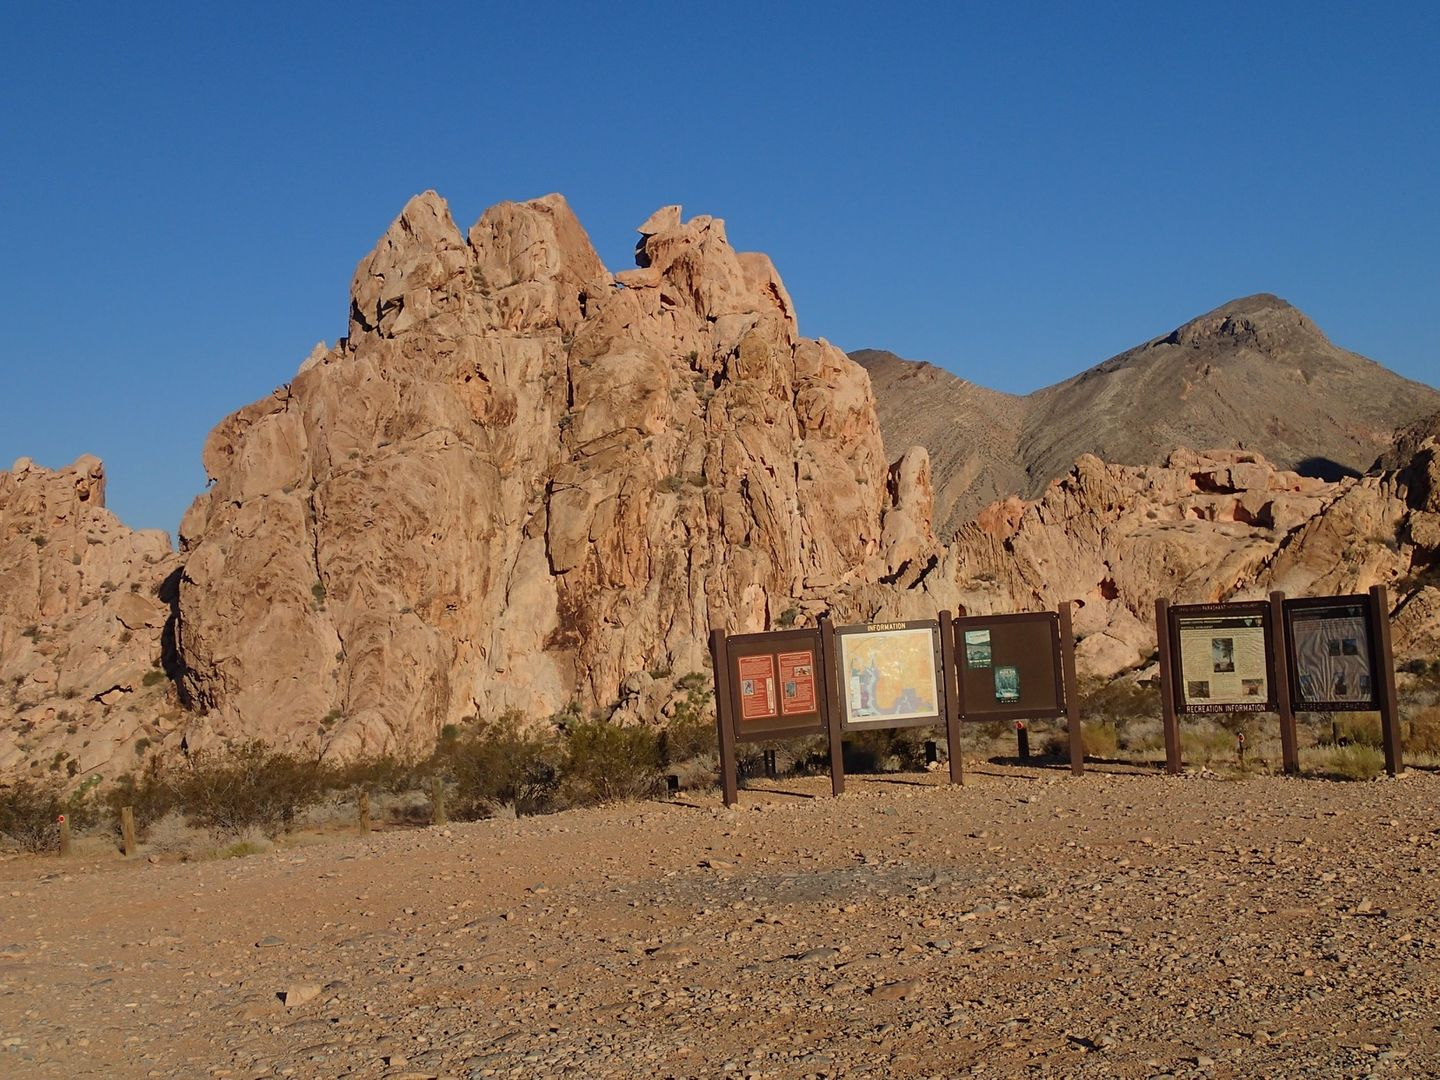 Gold Butte Backcountry Byway - Waypoint 9: Parking Area